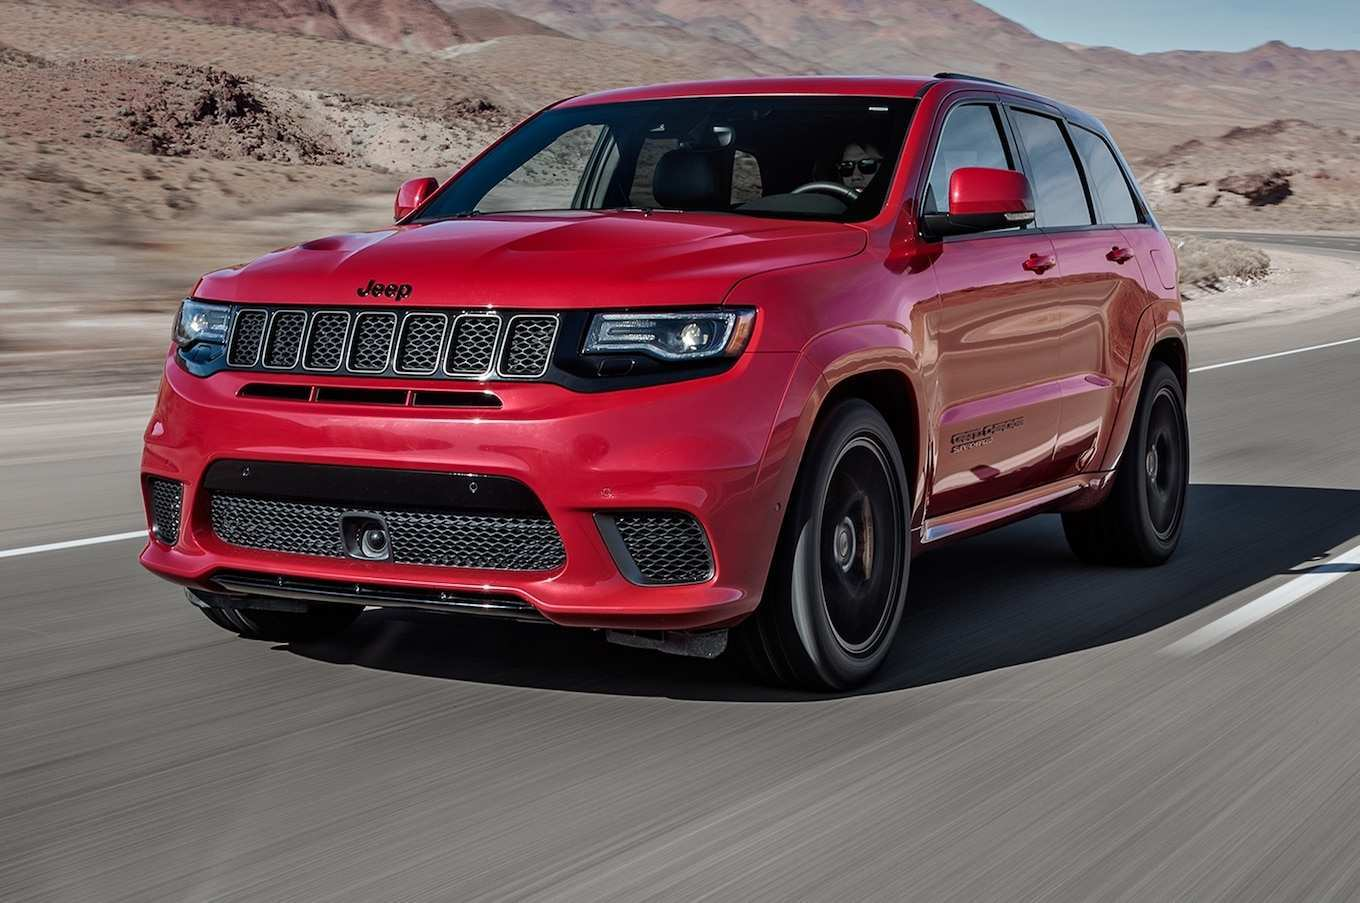 2020 Jeep Grand Cherokee Summit Redesign 2020 Jeep Car